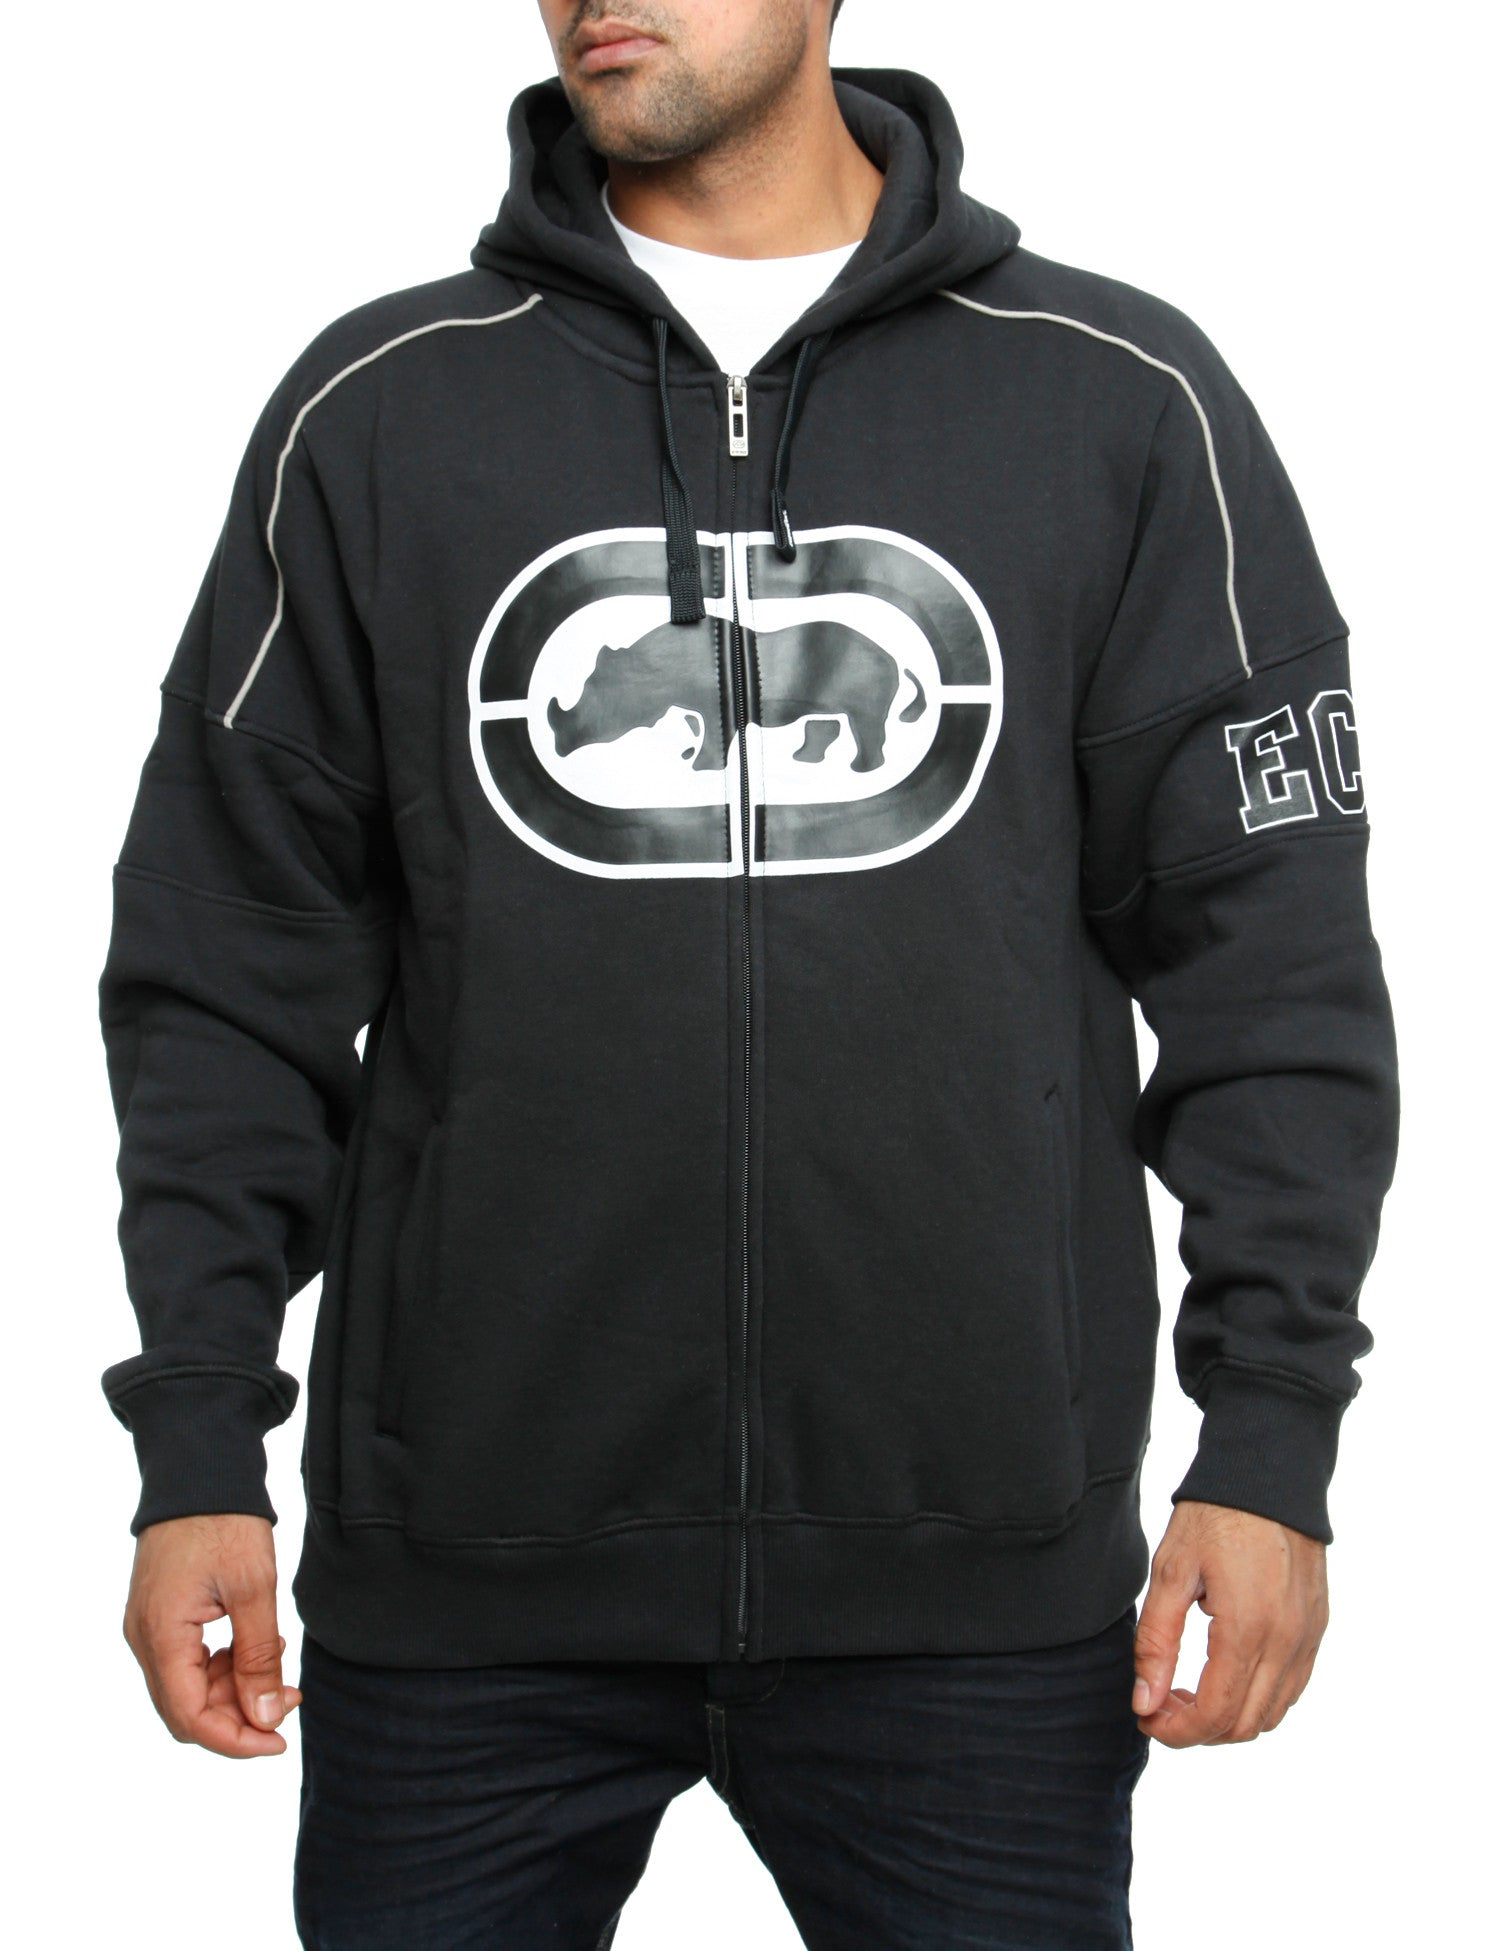 Image of Ecko Zip Hoody Docklands Black